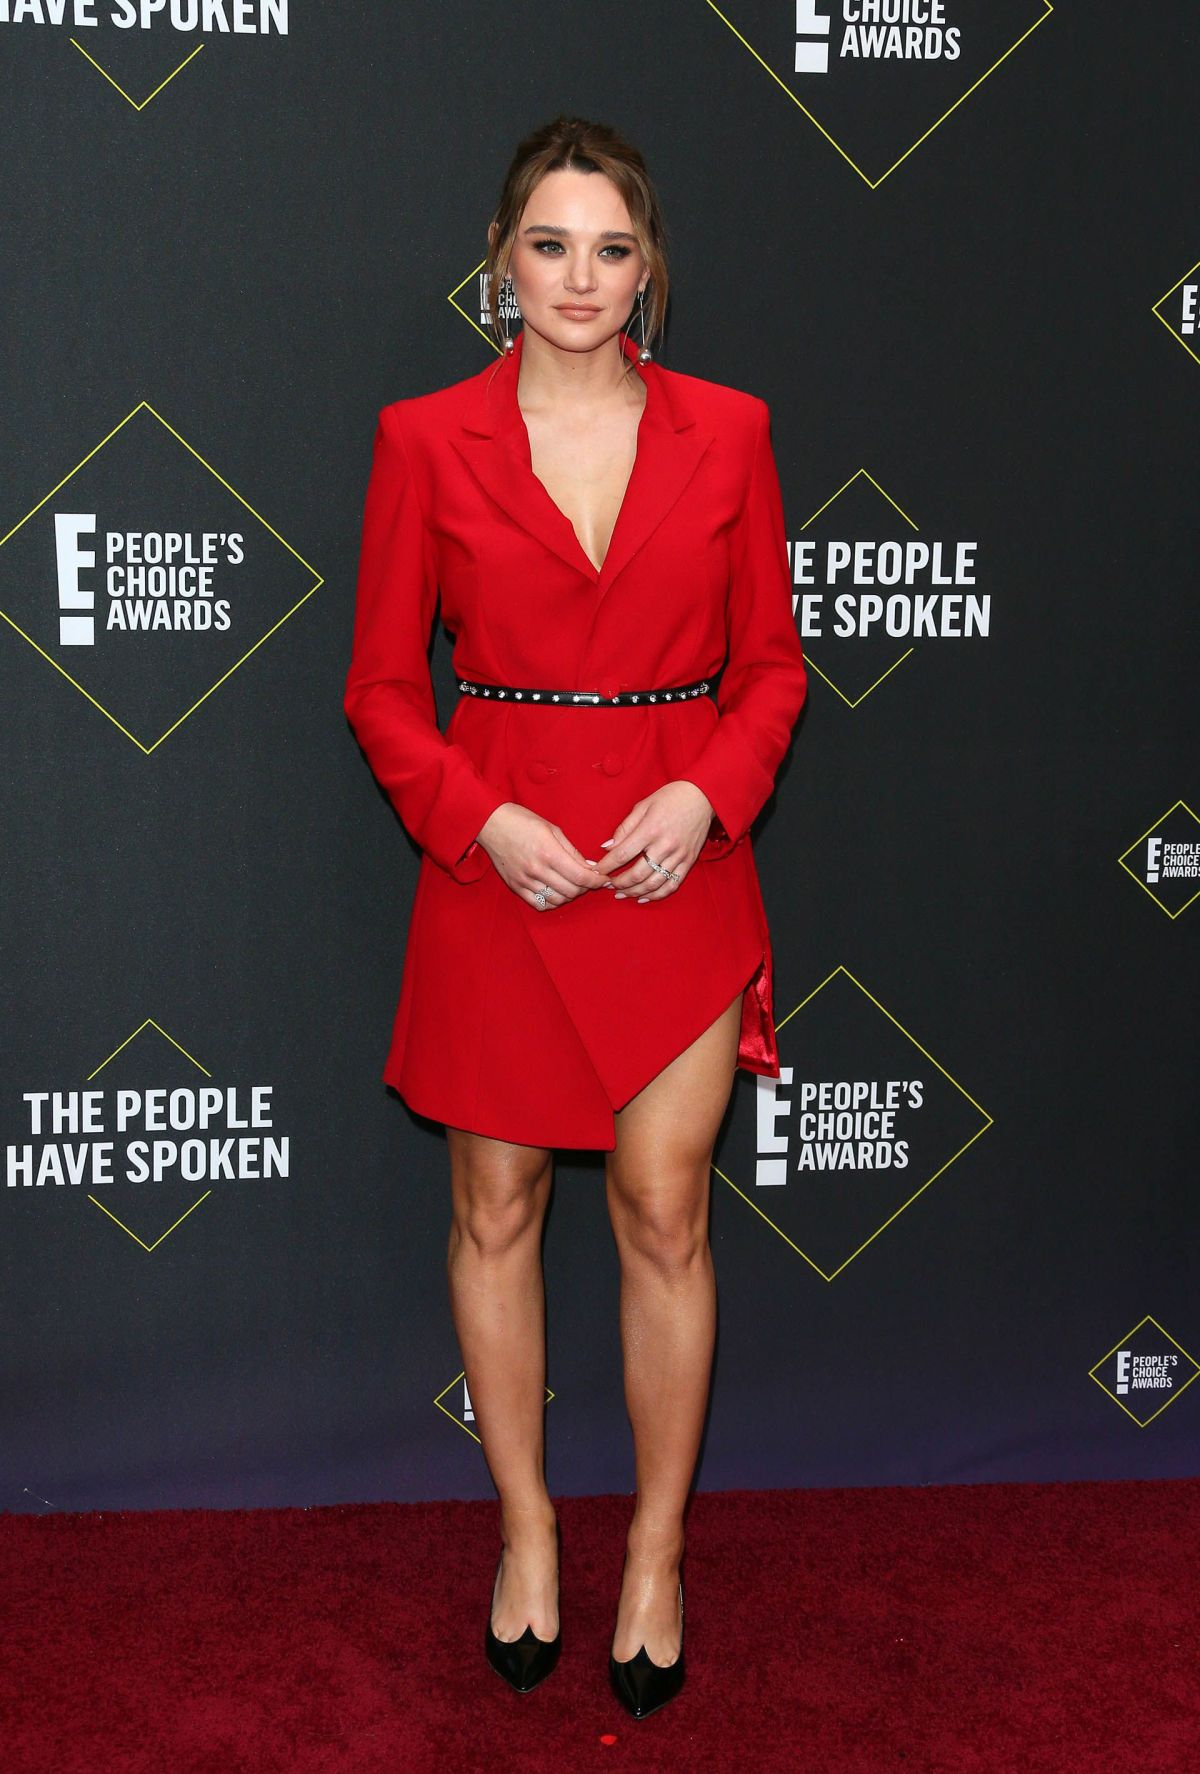 US actress Hunter King arrives for the 45th annual E! People's Choice Awards at Barker Hangar in Santa Monica, California, on November 10, 2019. (Photo by Jean-Baptiste Lacroix / AFP)